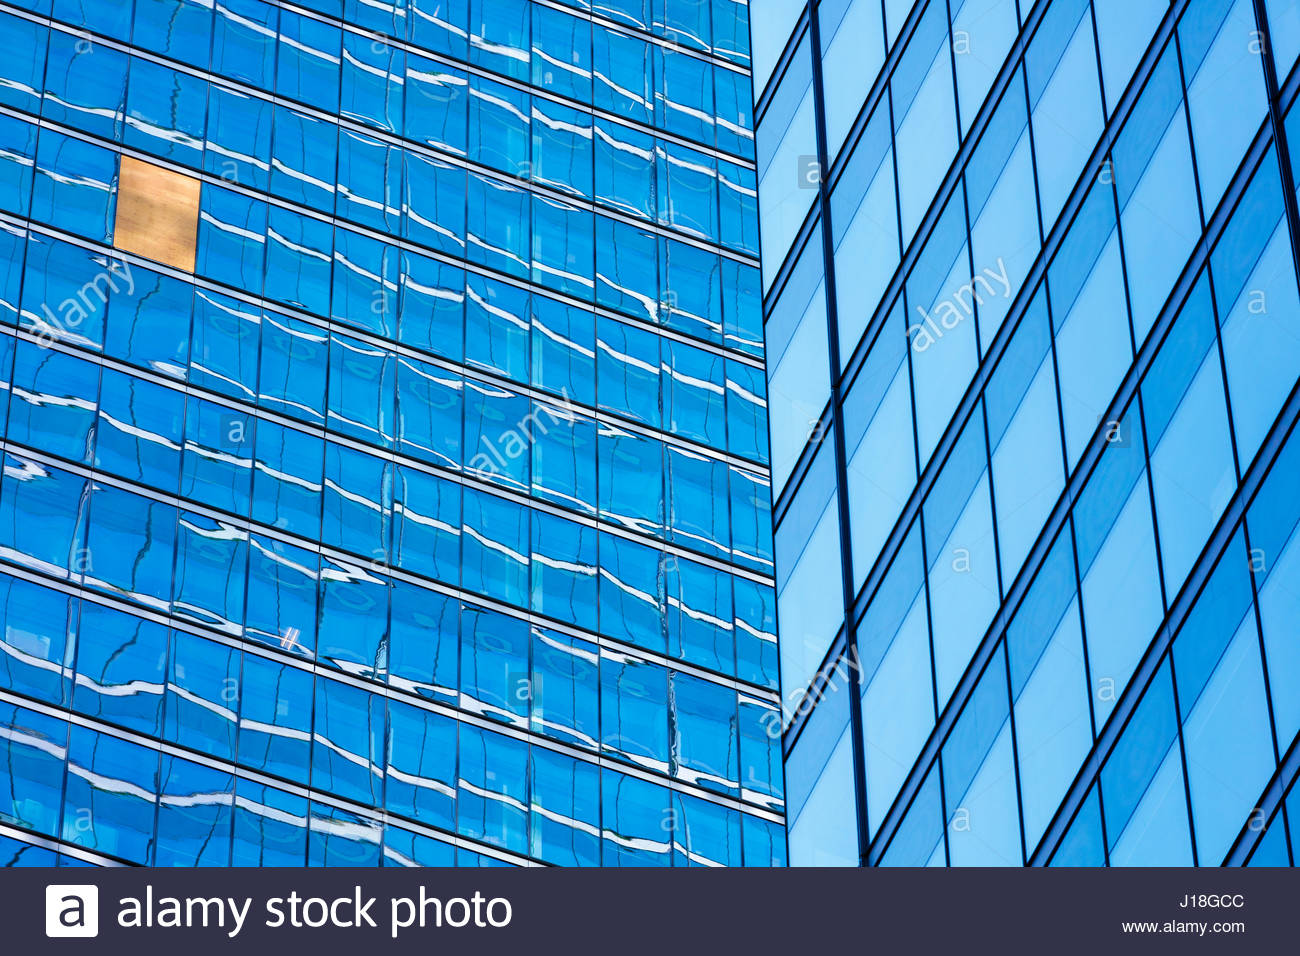 Temporary repair of broken window on office building on Bay street financial district in Toronto Ontario Canada - Stock Image